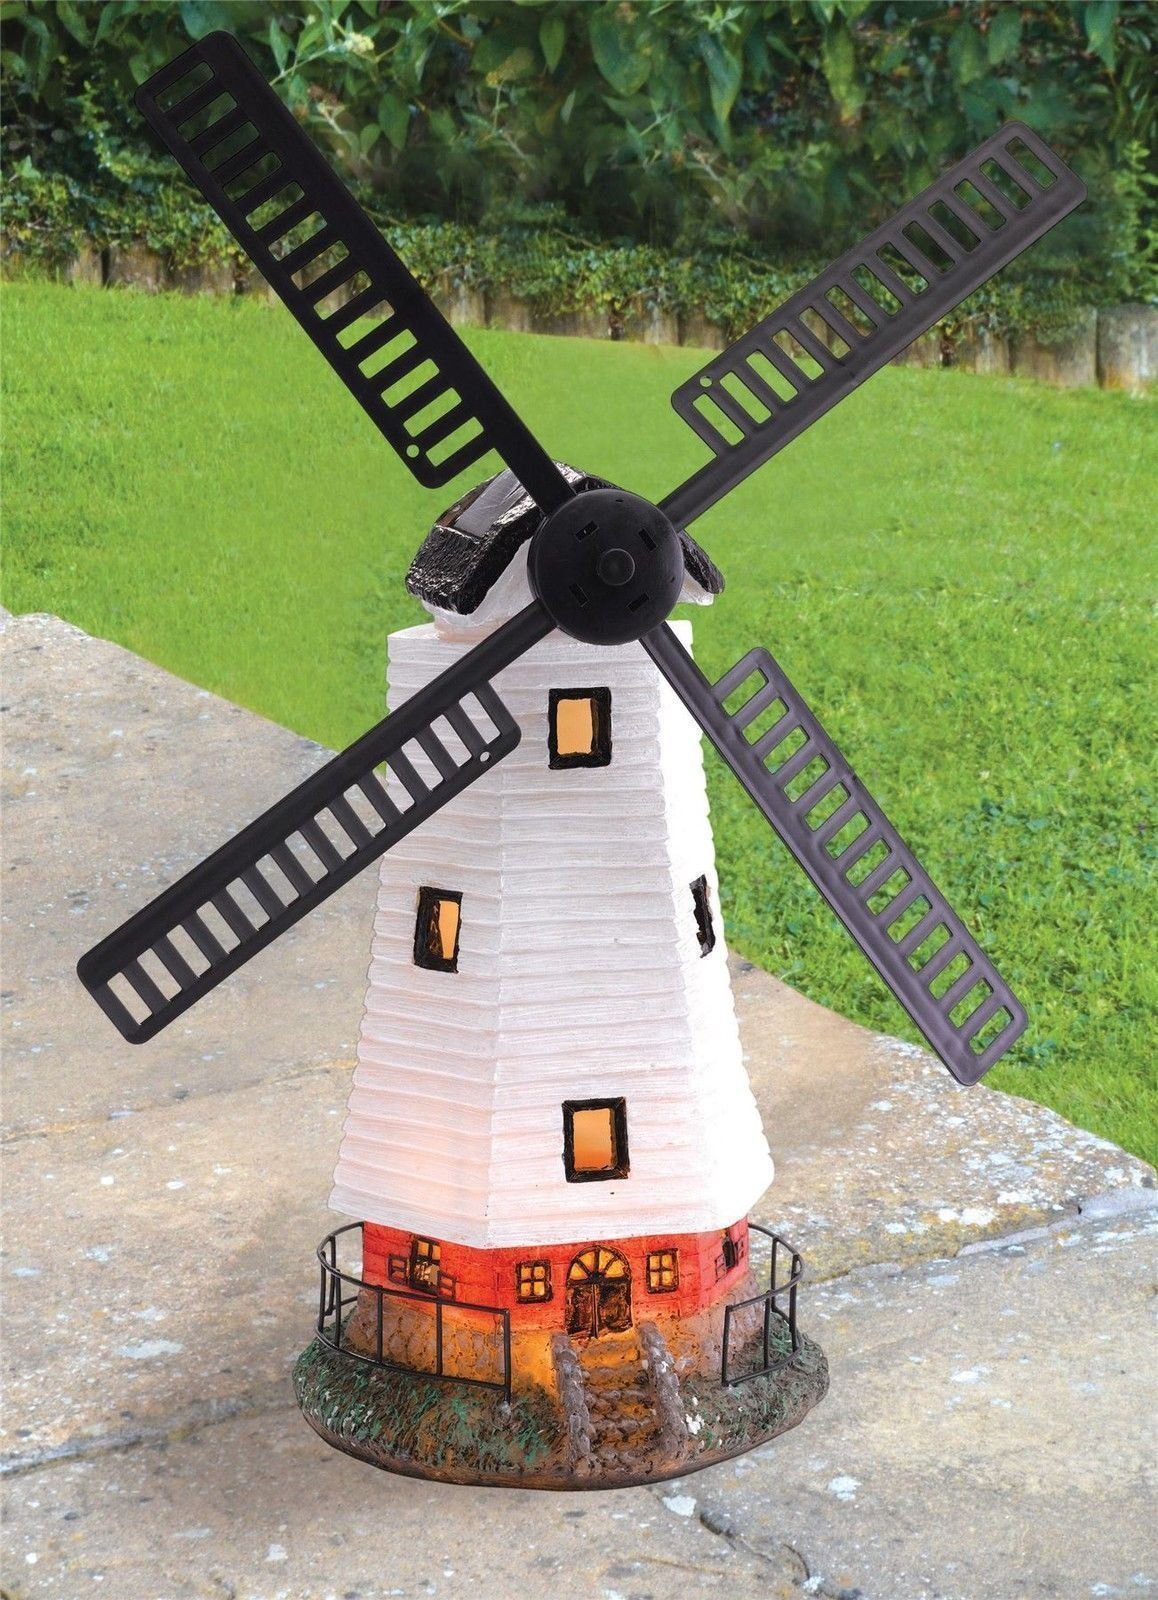 LARGE SOLAR POWERED GARDEN WINDMILL LED LIGHT MOVING SAILS ORNAMENT ...